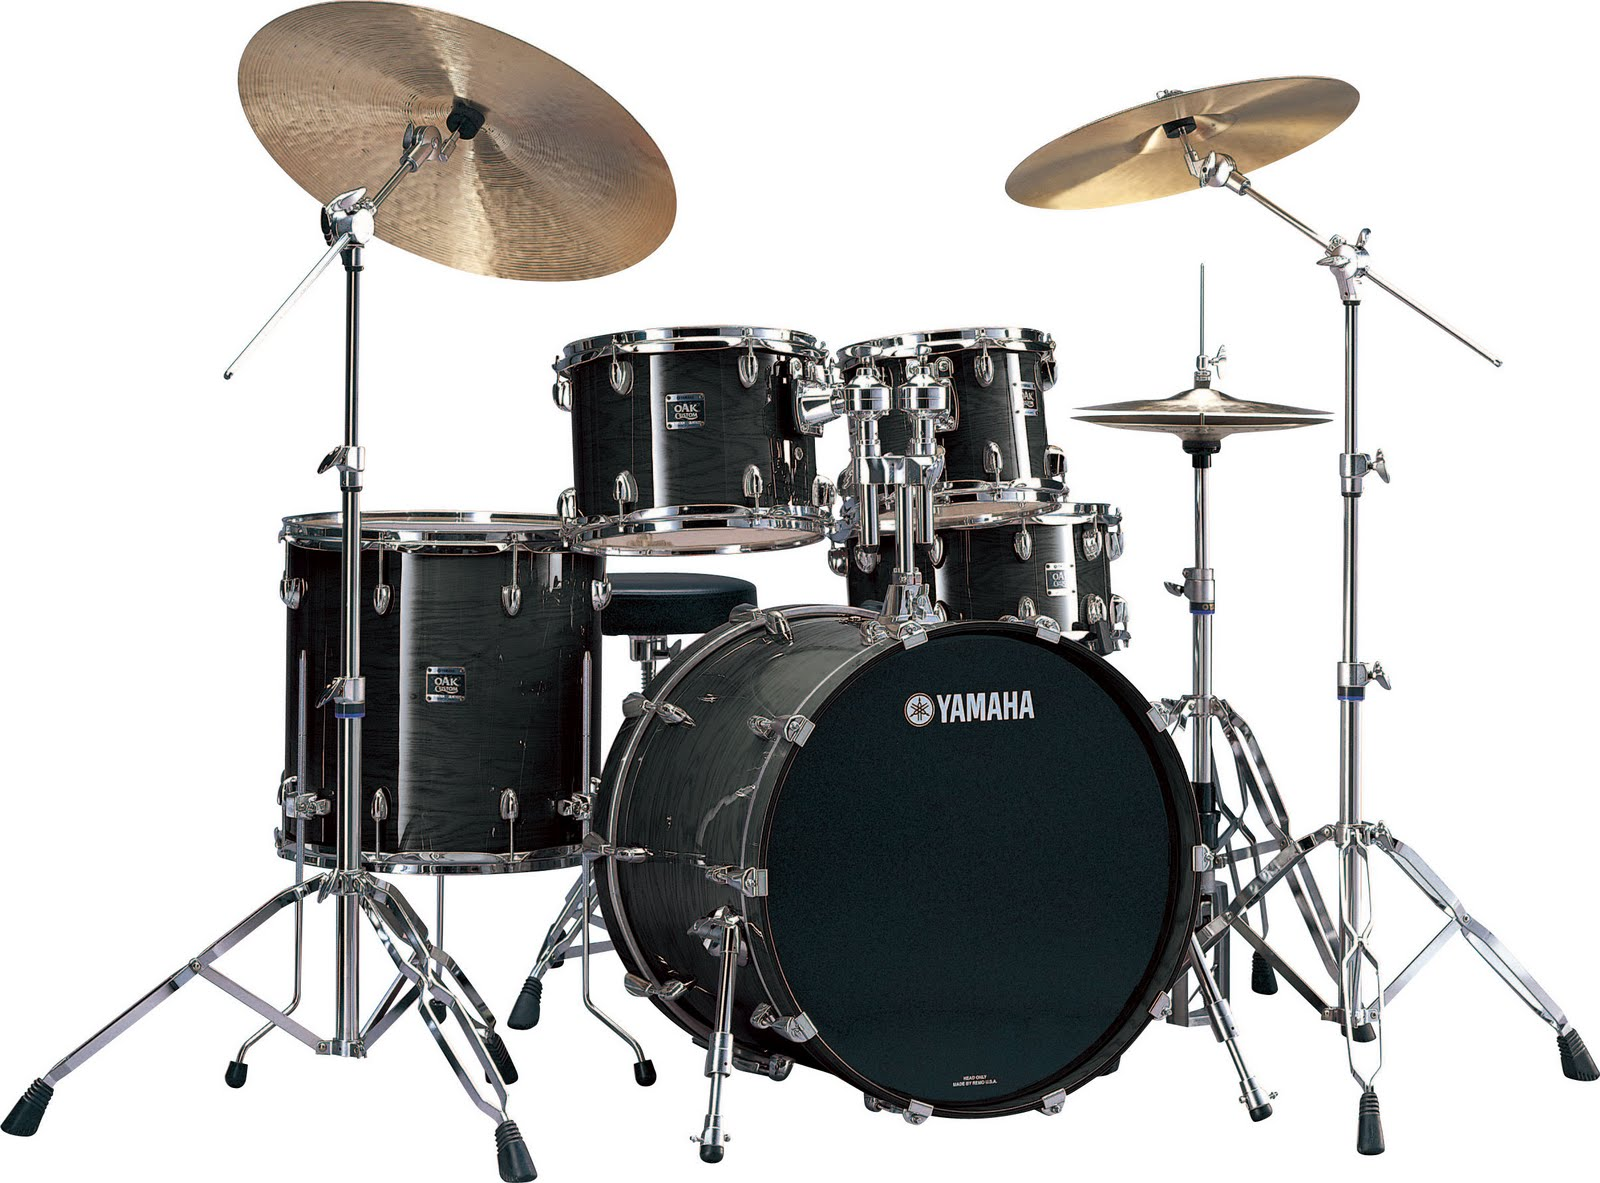 yamaha oak custom series drum set find your drum set drum kits gear percussion. Black Bedroom Furniture Sets. Home Design Ideas